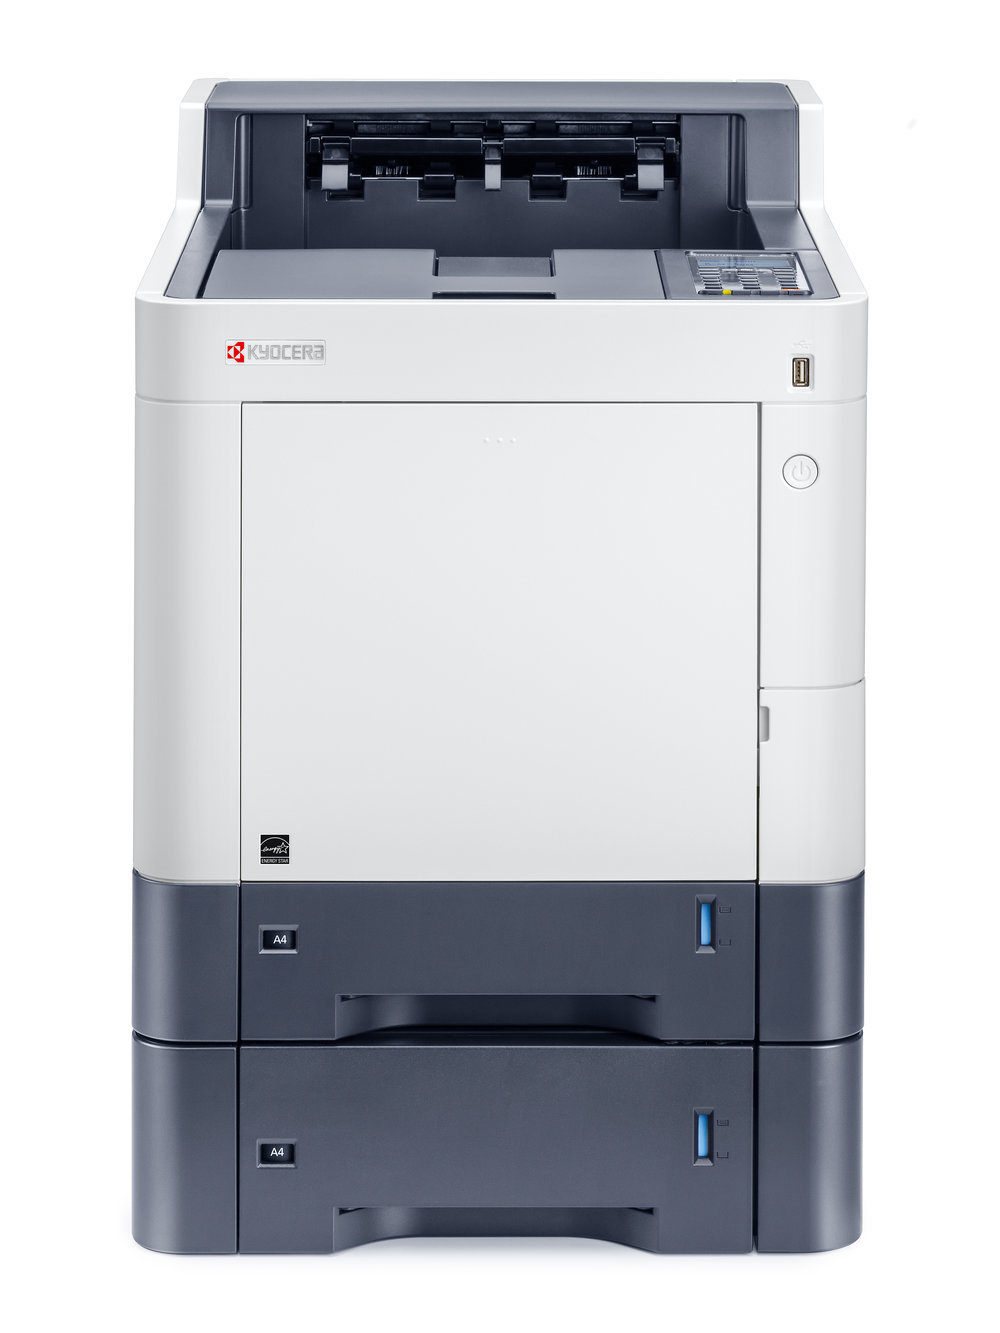 The Ecosys P7240cdn